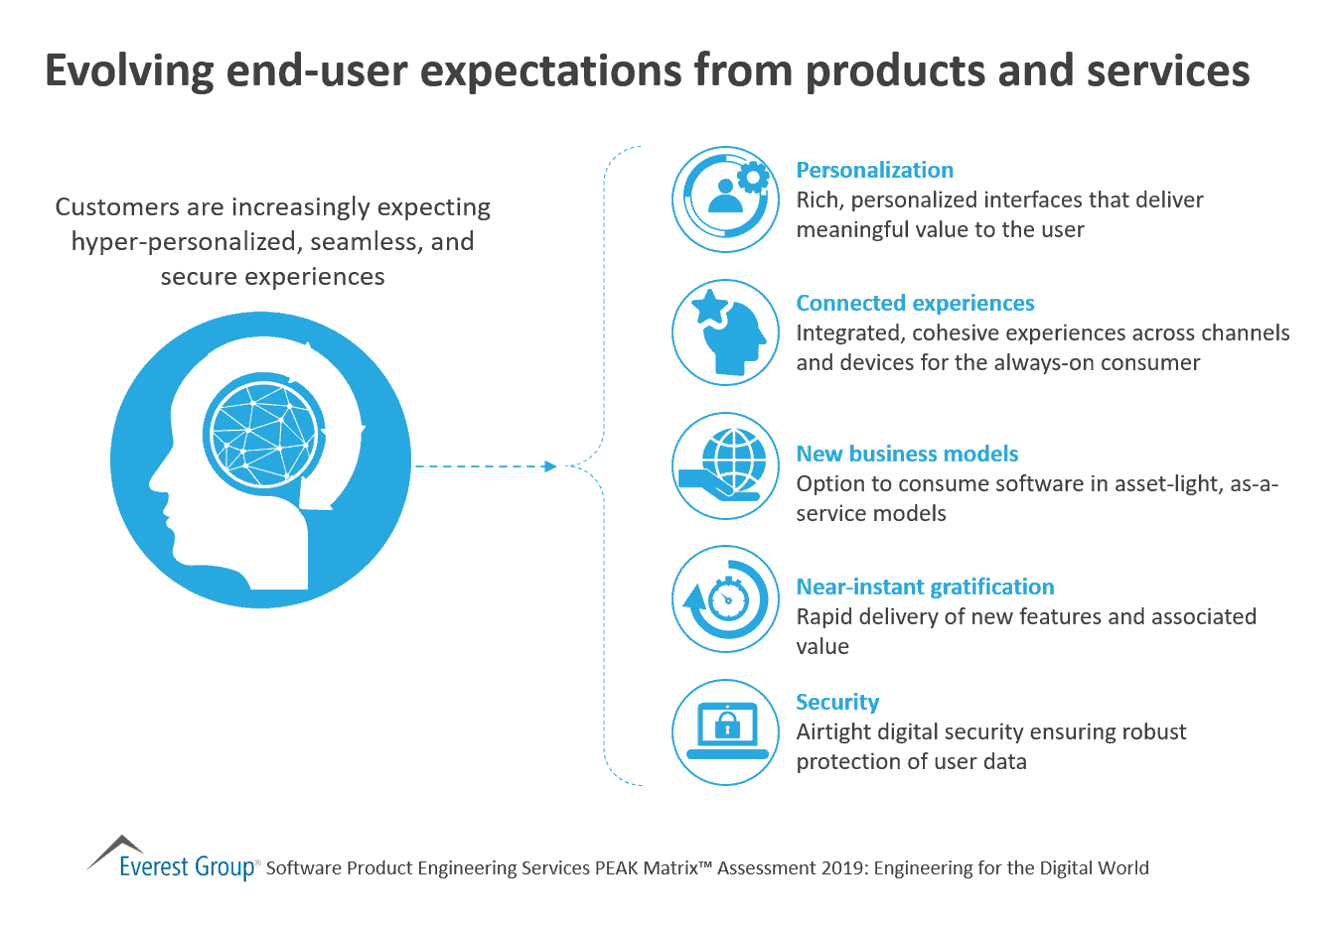 Evolving end-user expectations from products and services